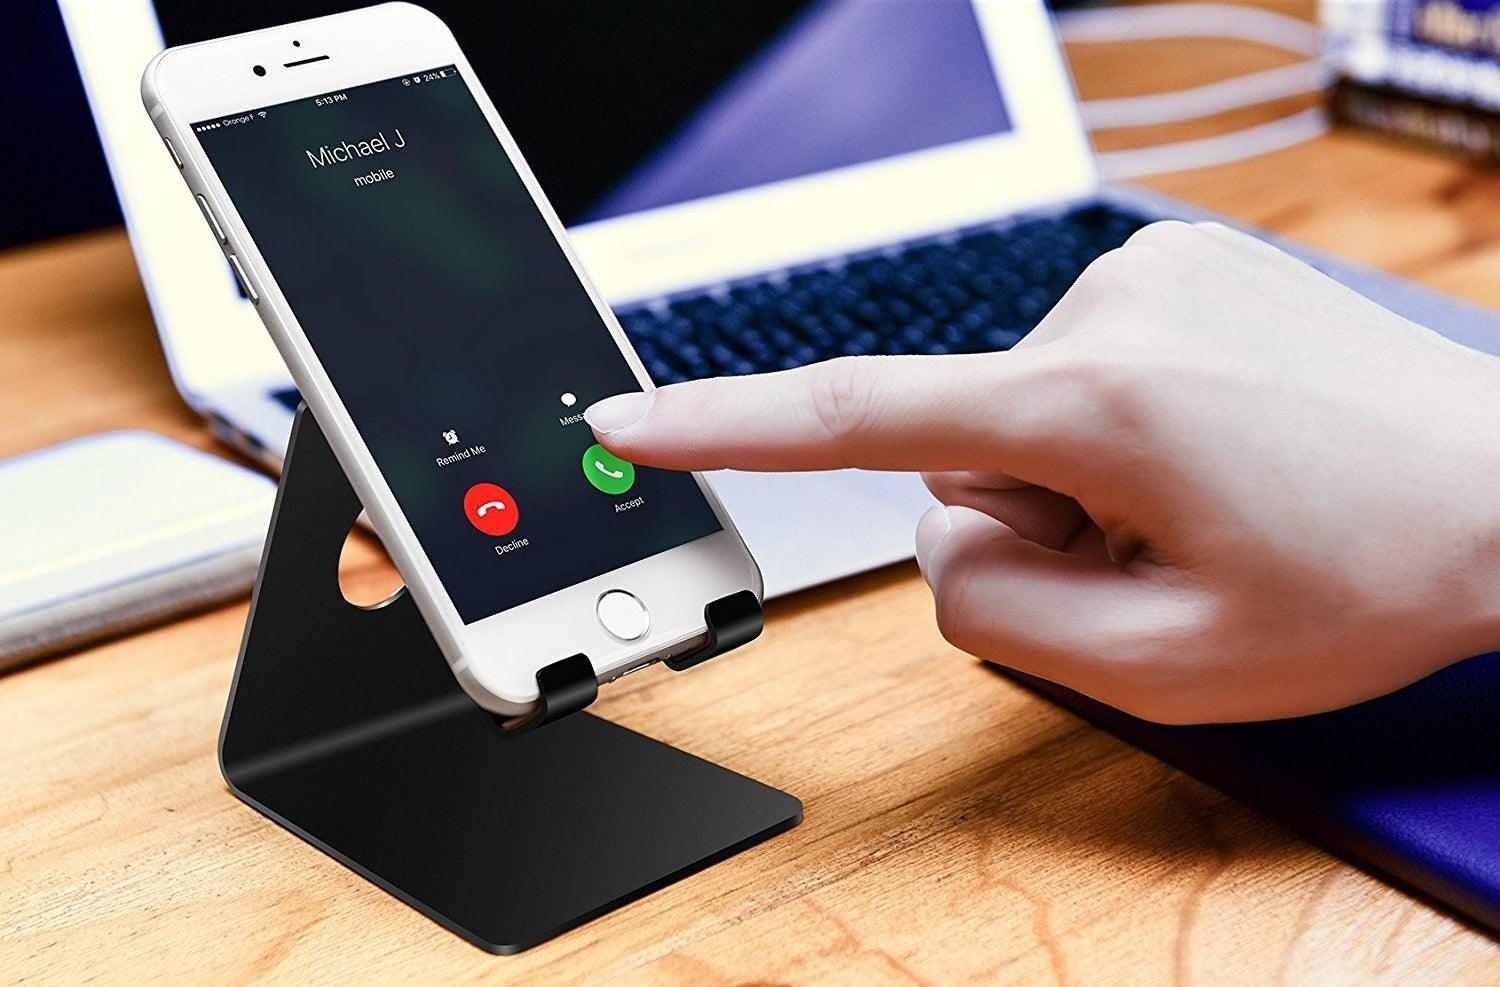 Cell phone stand in black with a phone in it on a desk